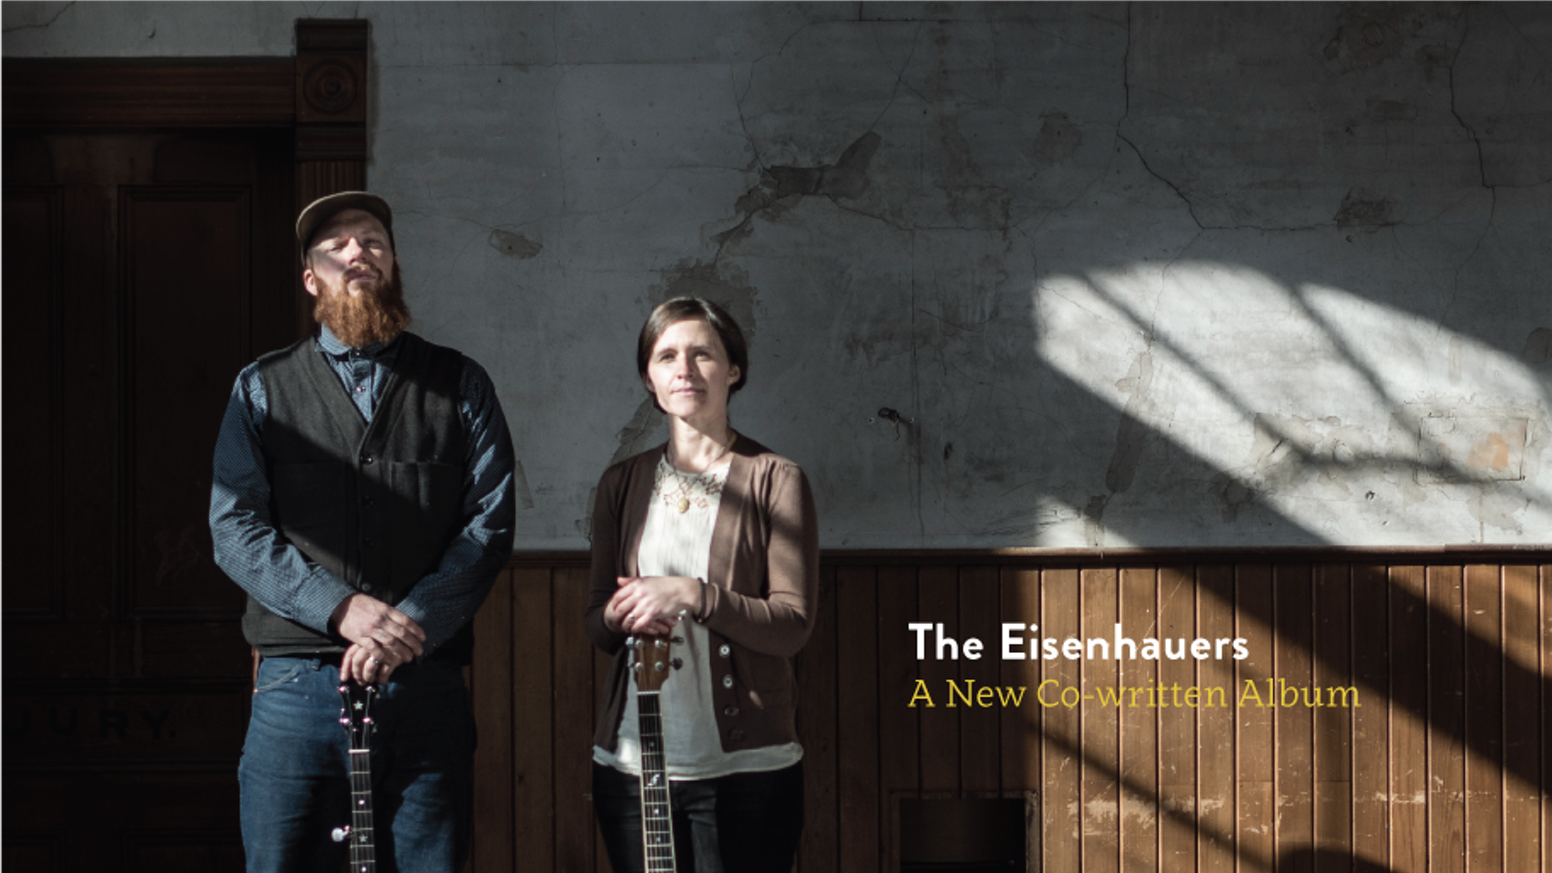 Canadian folk duo, The Eisenhauers, are going to Nashville to record a new co-written album with Juno award winning producer, Steve Dawson.